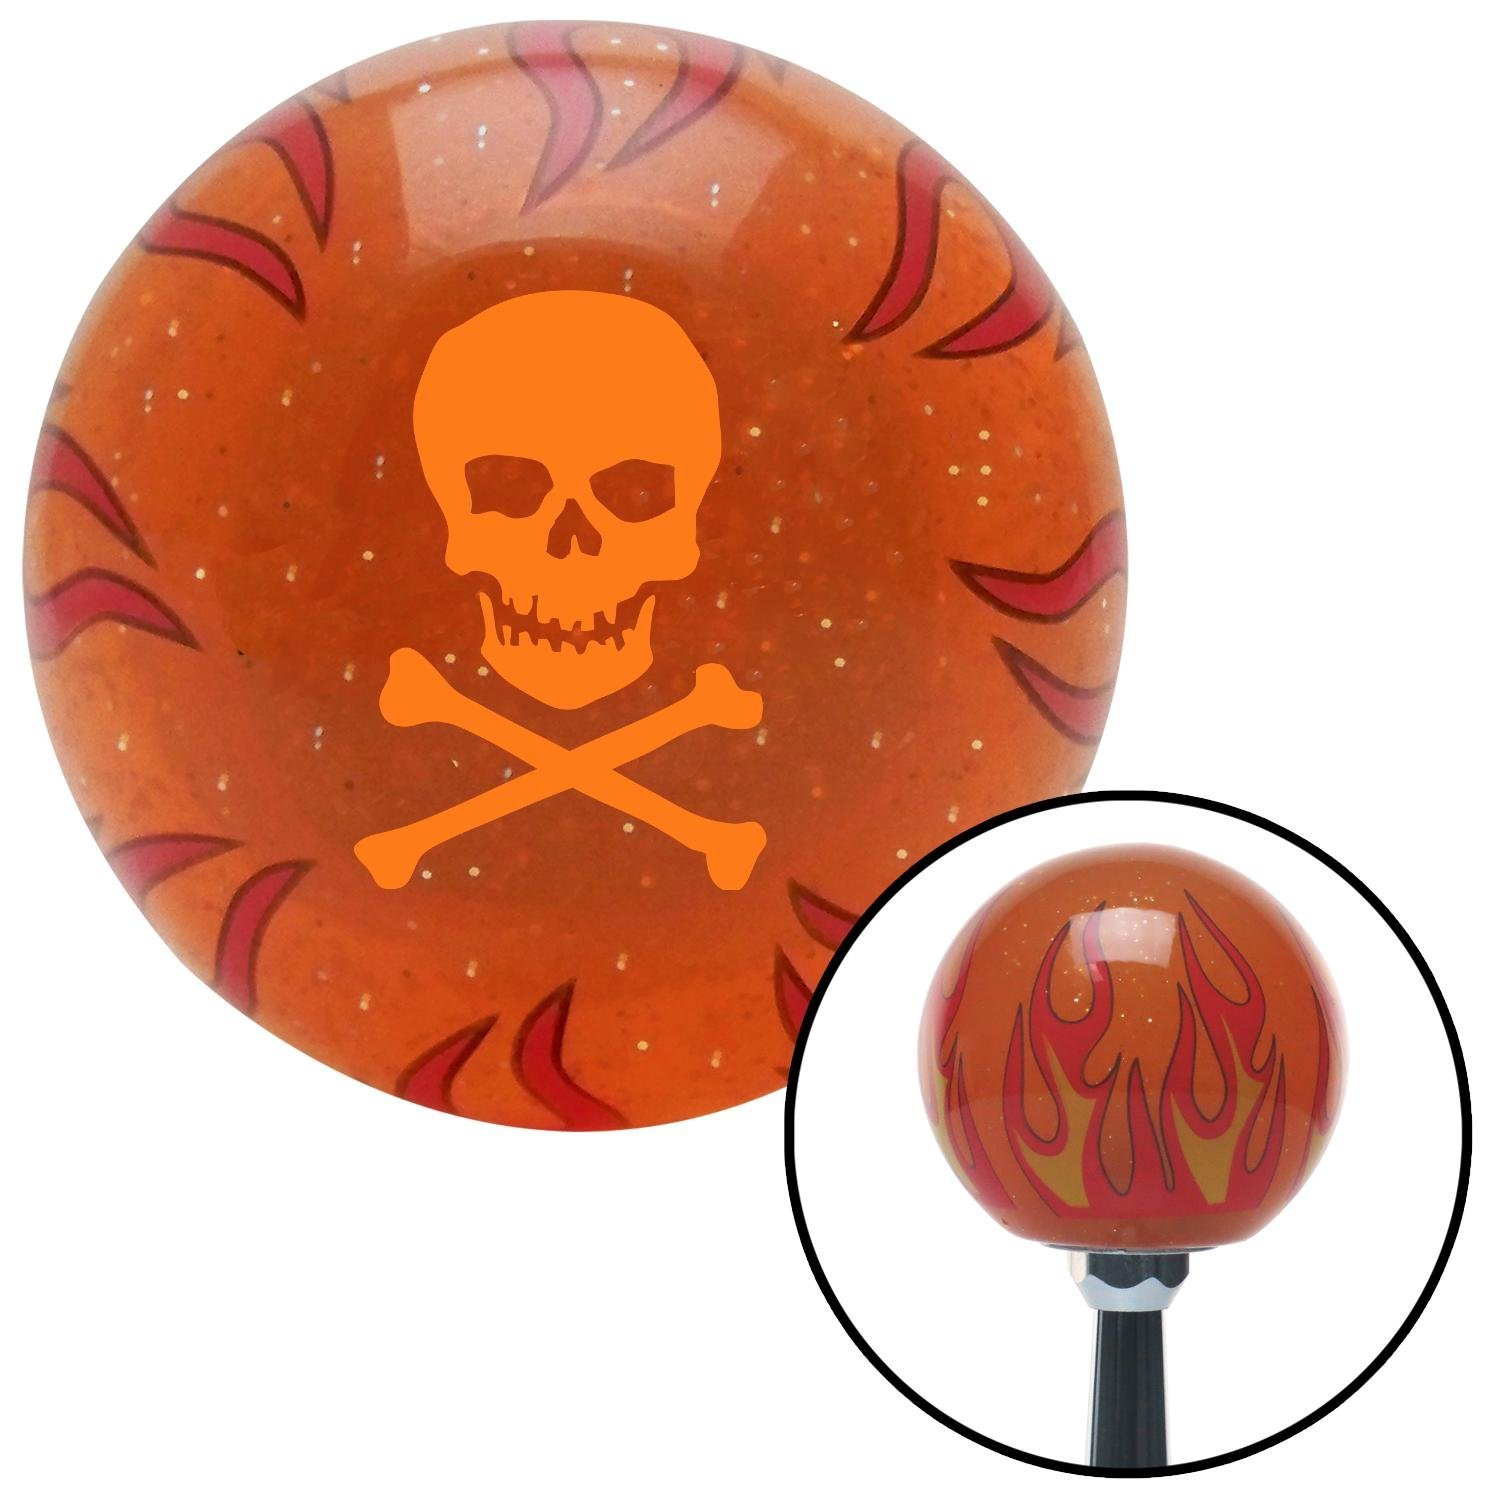 American Shifter 255104 Orange Flame Metal Flake Shift Knob with M16 x 1.5 Insert Orange Skull and Bones